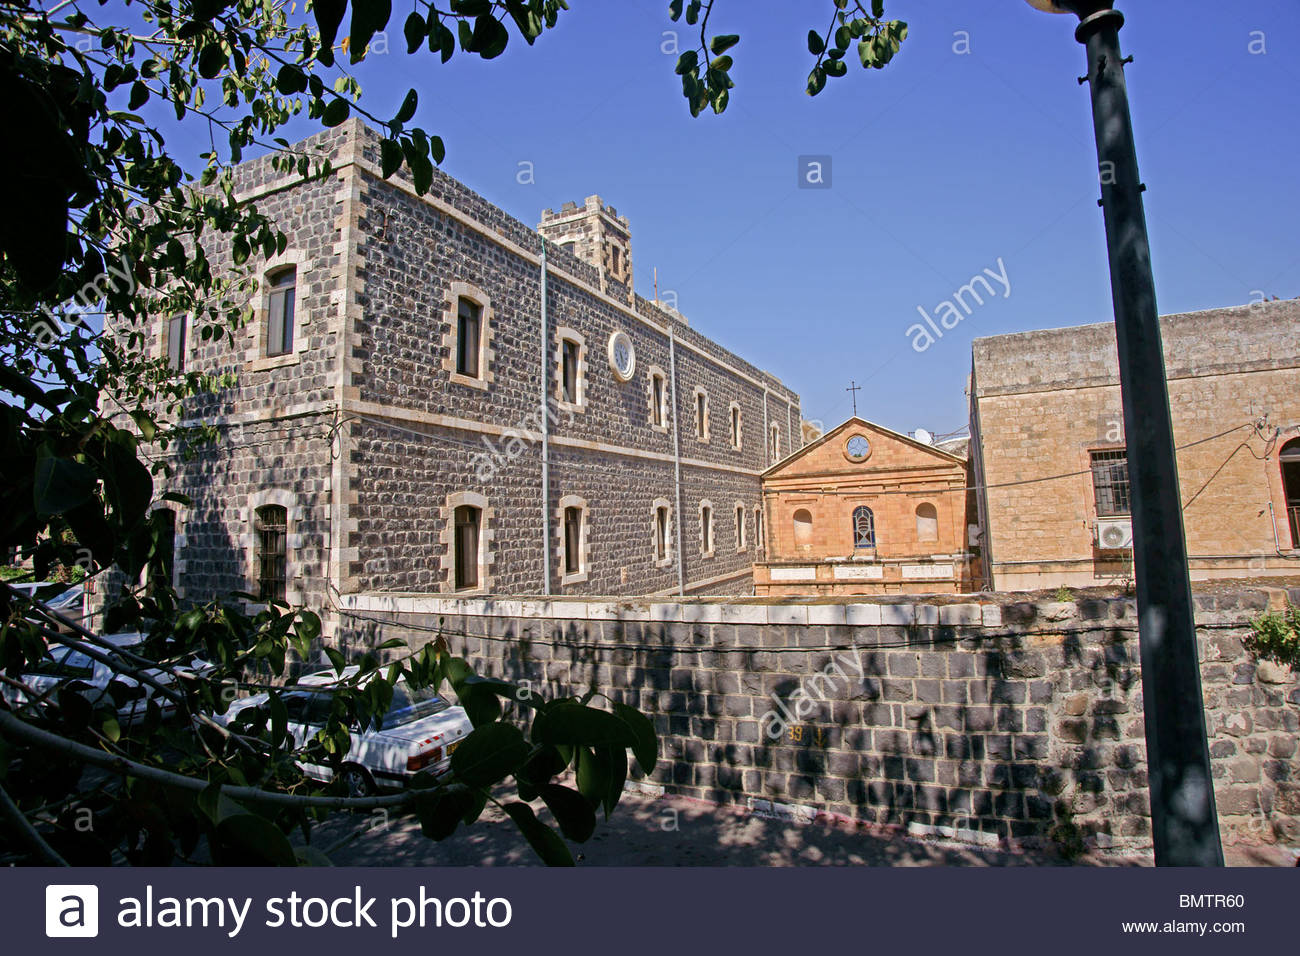 St Peter's Church Tiberias, Israel, Tiberias, The St Peter Church on the water front of the ...